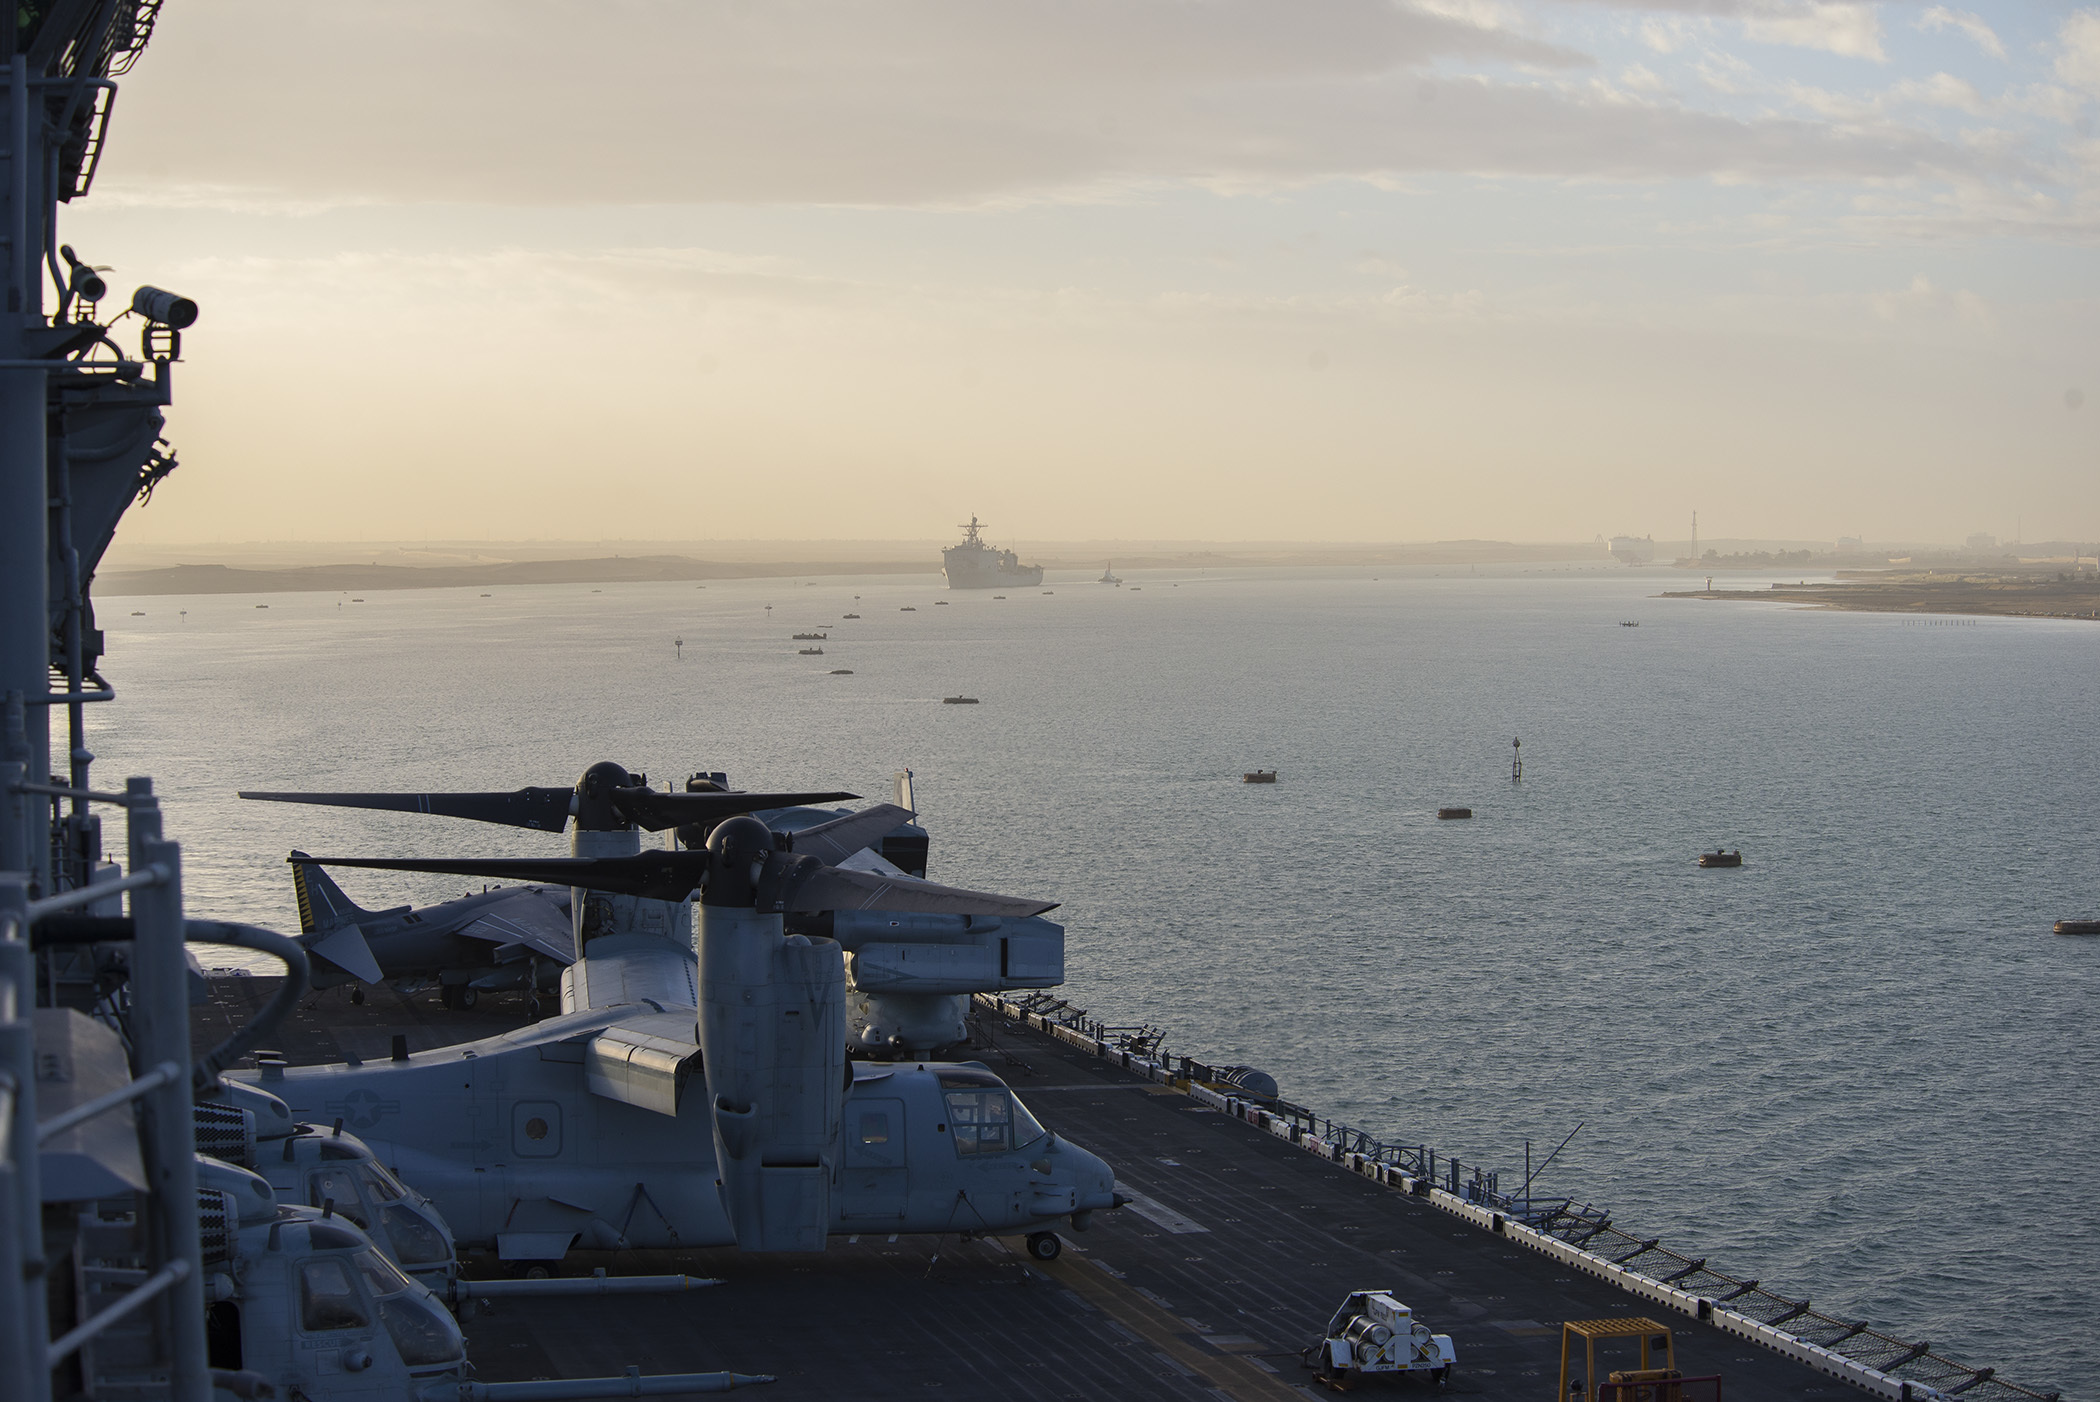 The amphibious transport dock ship USS Whidbey Island (LSD 41), background, and the amphibious assault ship USS Wasp (LHD 1) transit the Suez Canal on Dec. 1, 2016. US Navy photo.